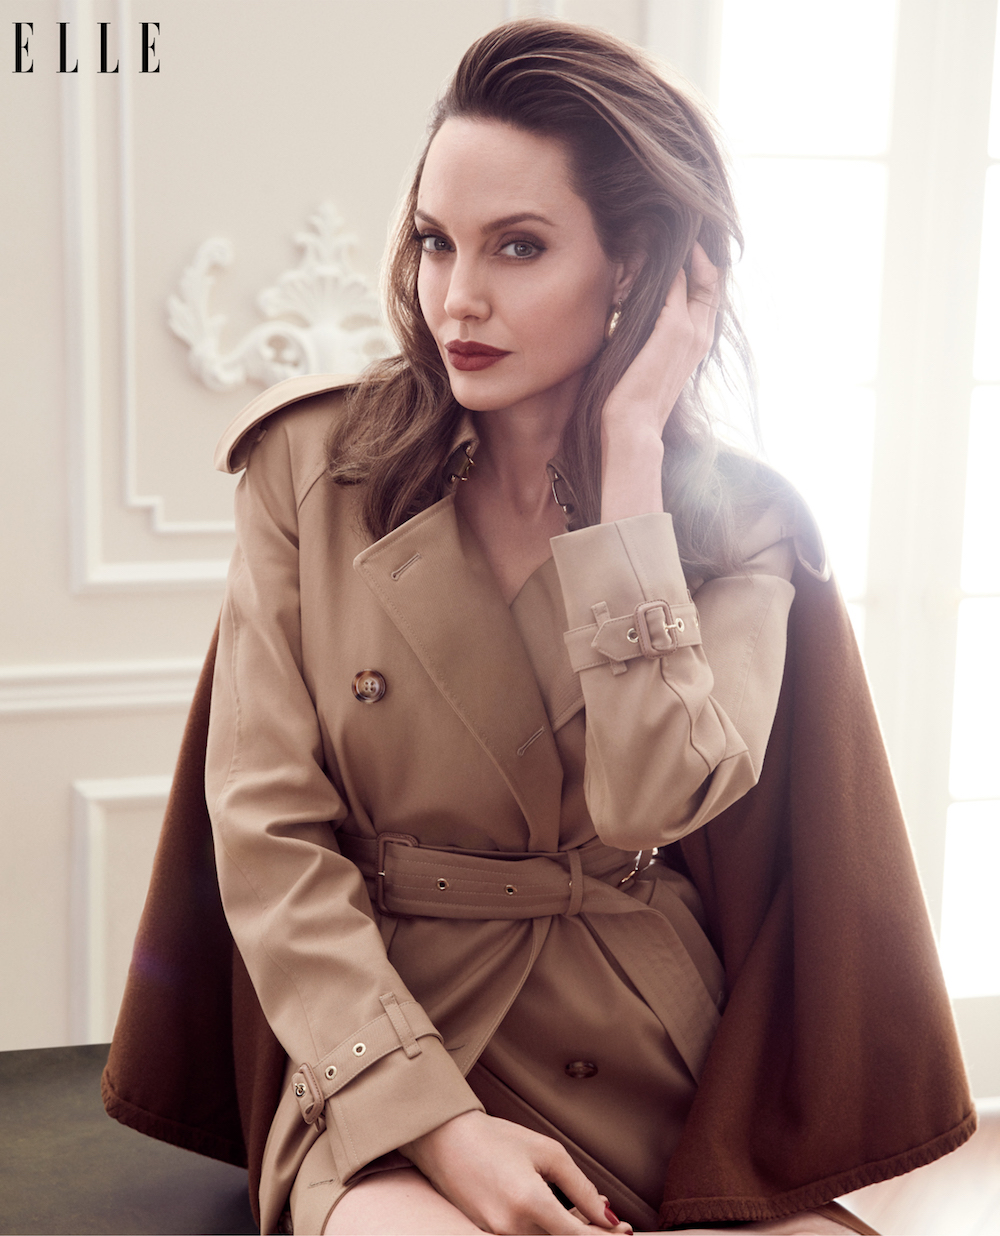 Angelina Jolie on Maleficent and the definition of – Wicked Women